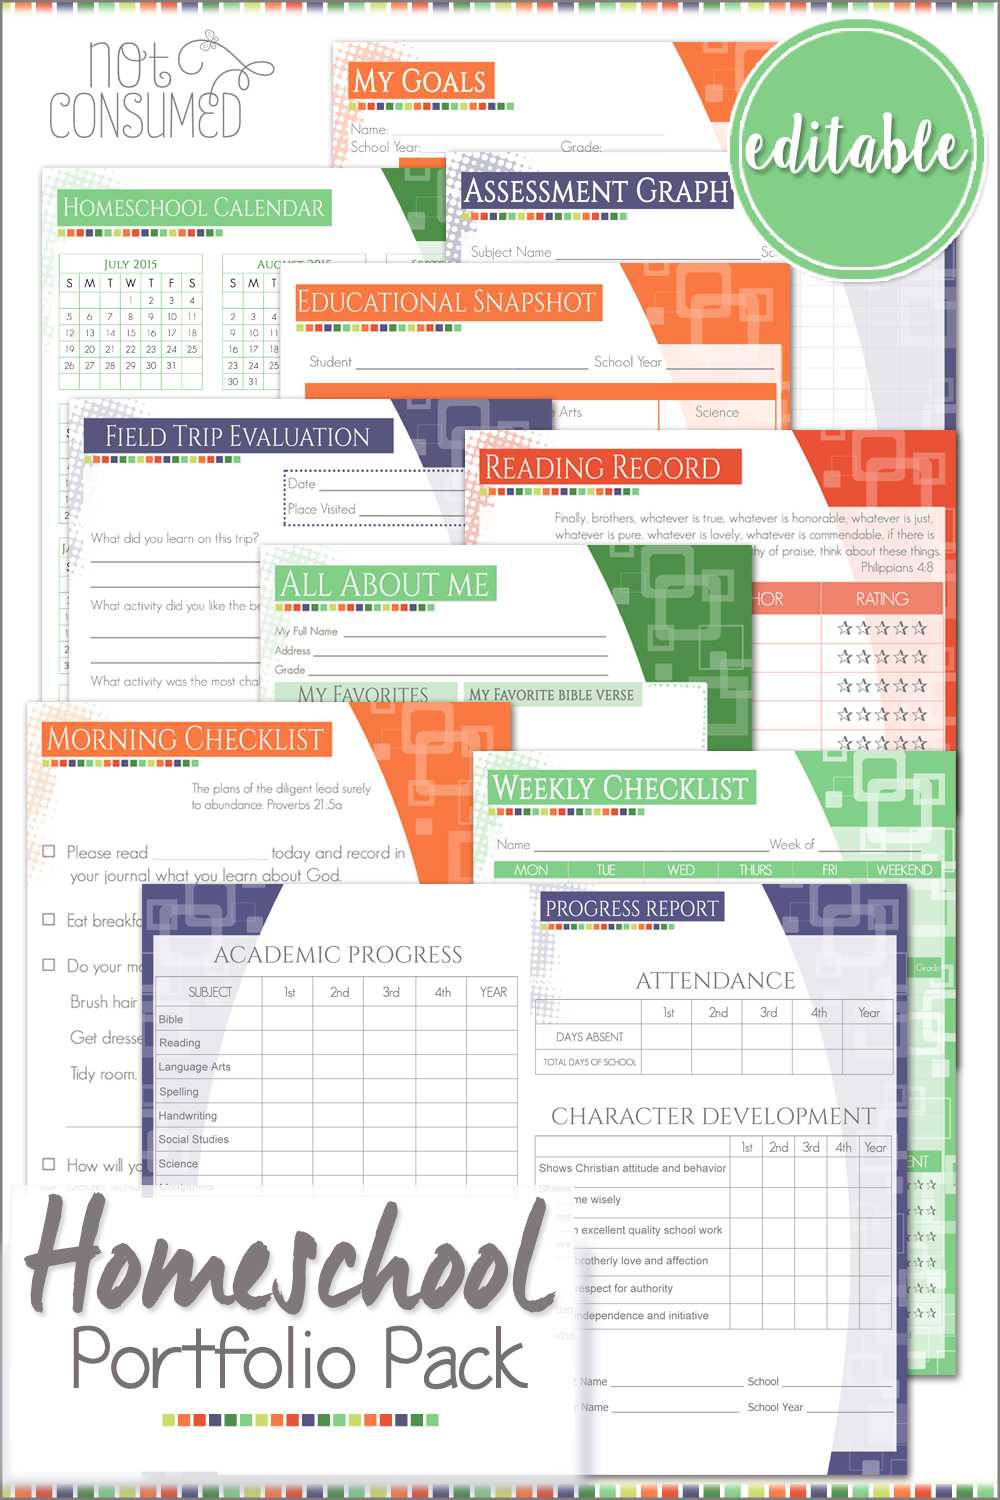 homeschool checklist template - homeschool portfolio printable pack